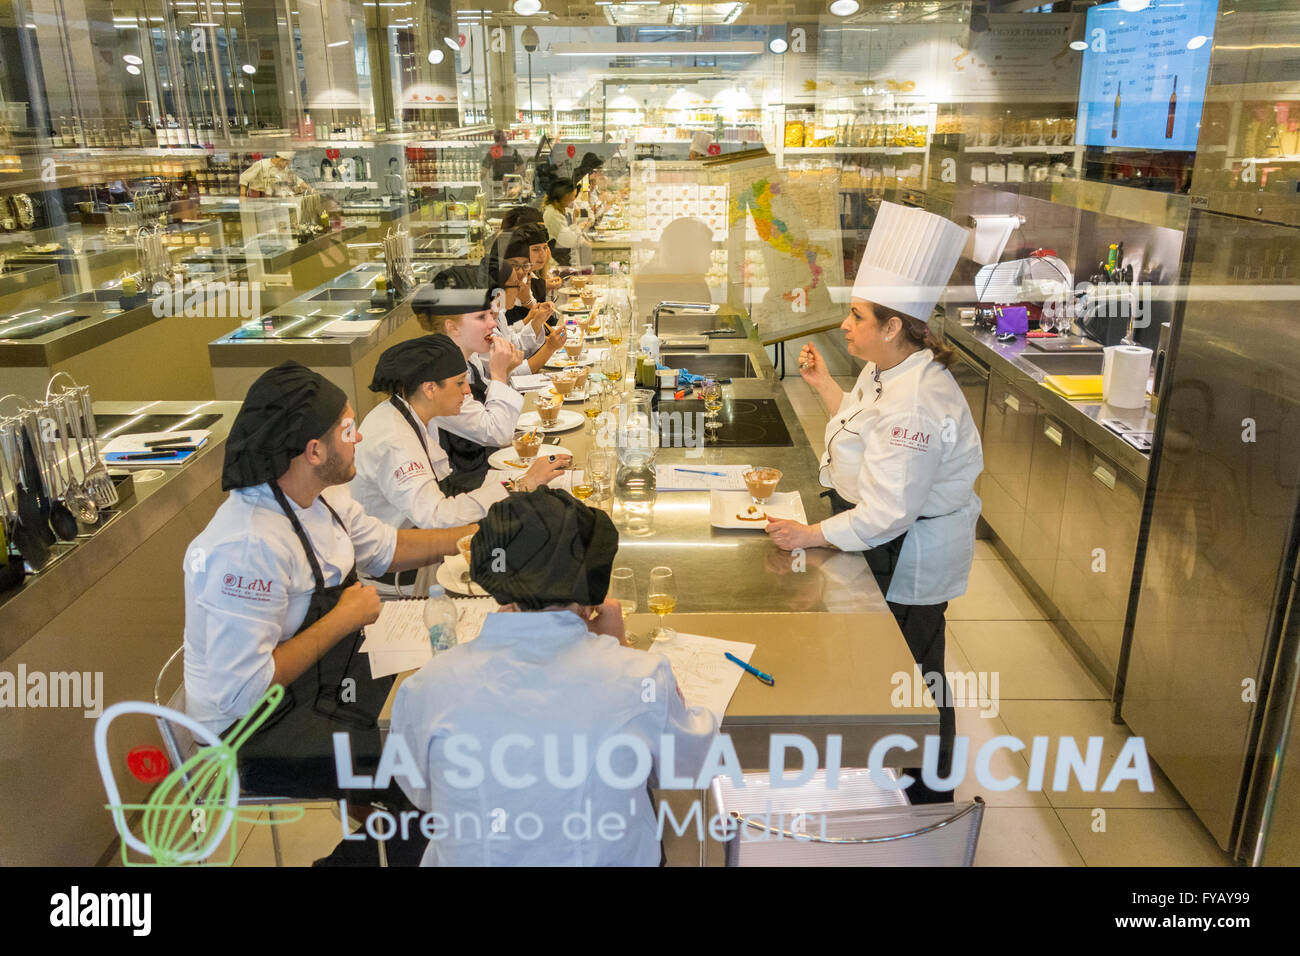 Florence Italy. Cookery class La Scuola di Cucina of the Scuola Lorenzo de' Medici LdM. Inside the Central Market - Stock Image